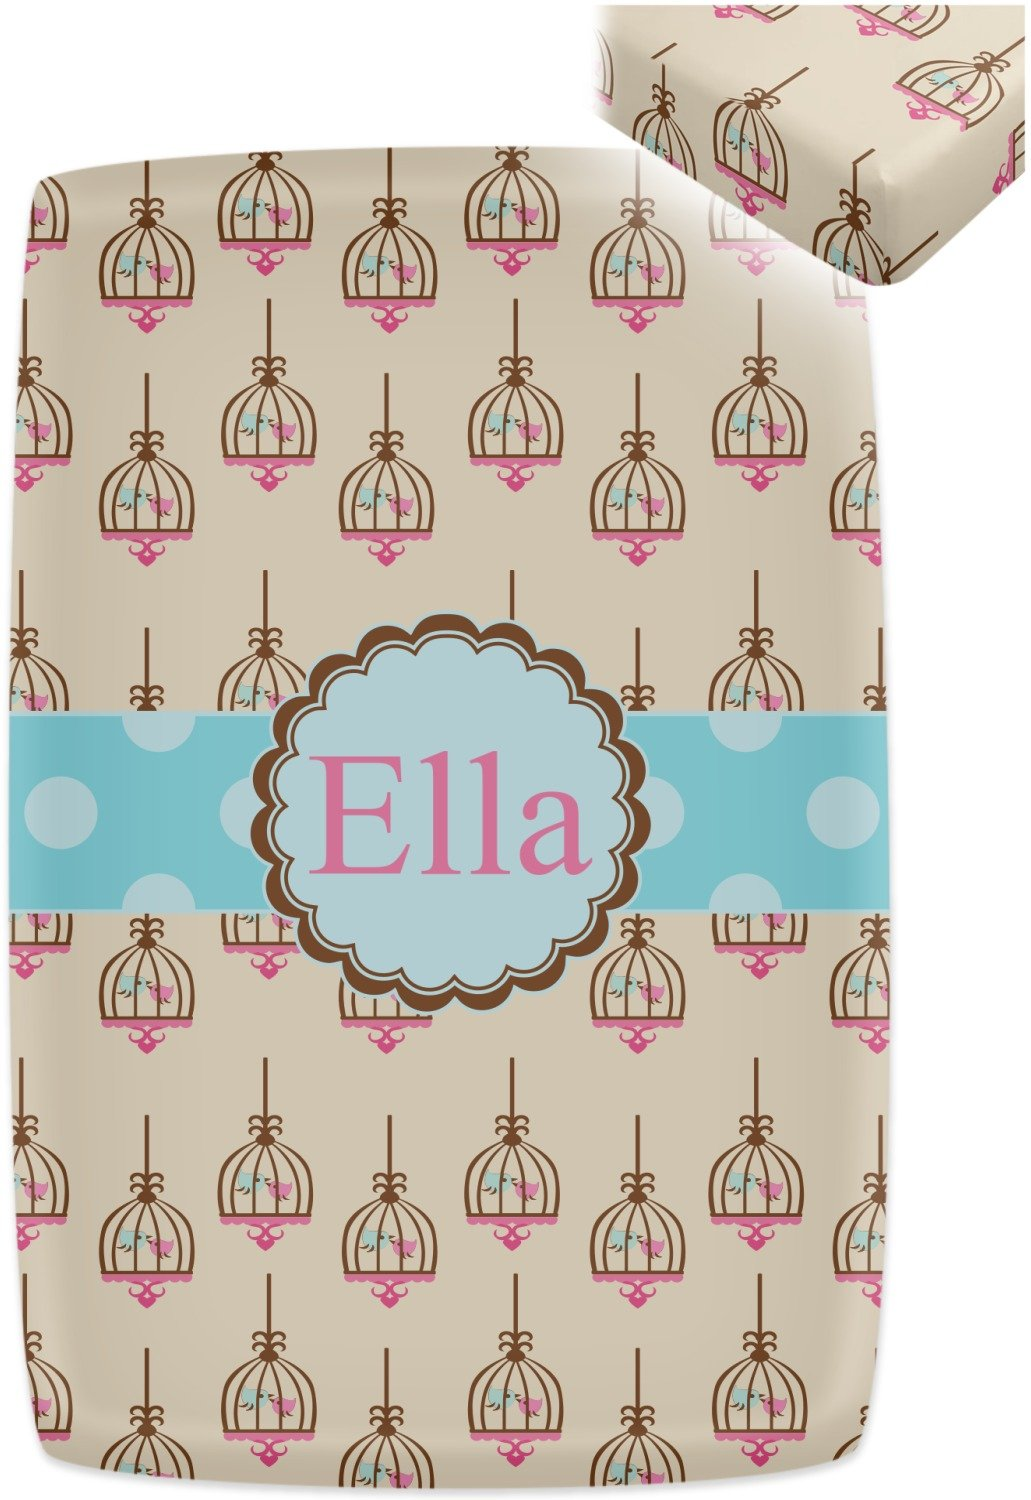 Kissing Birds Crib Fitted Sheet (Personalized) by RNK Shops (Image #2)